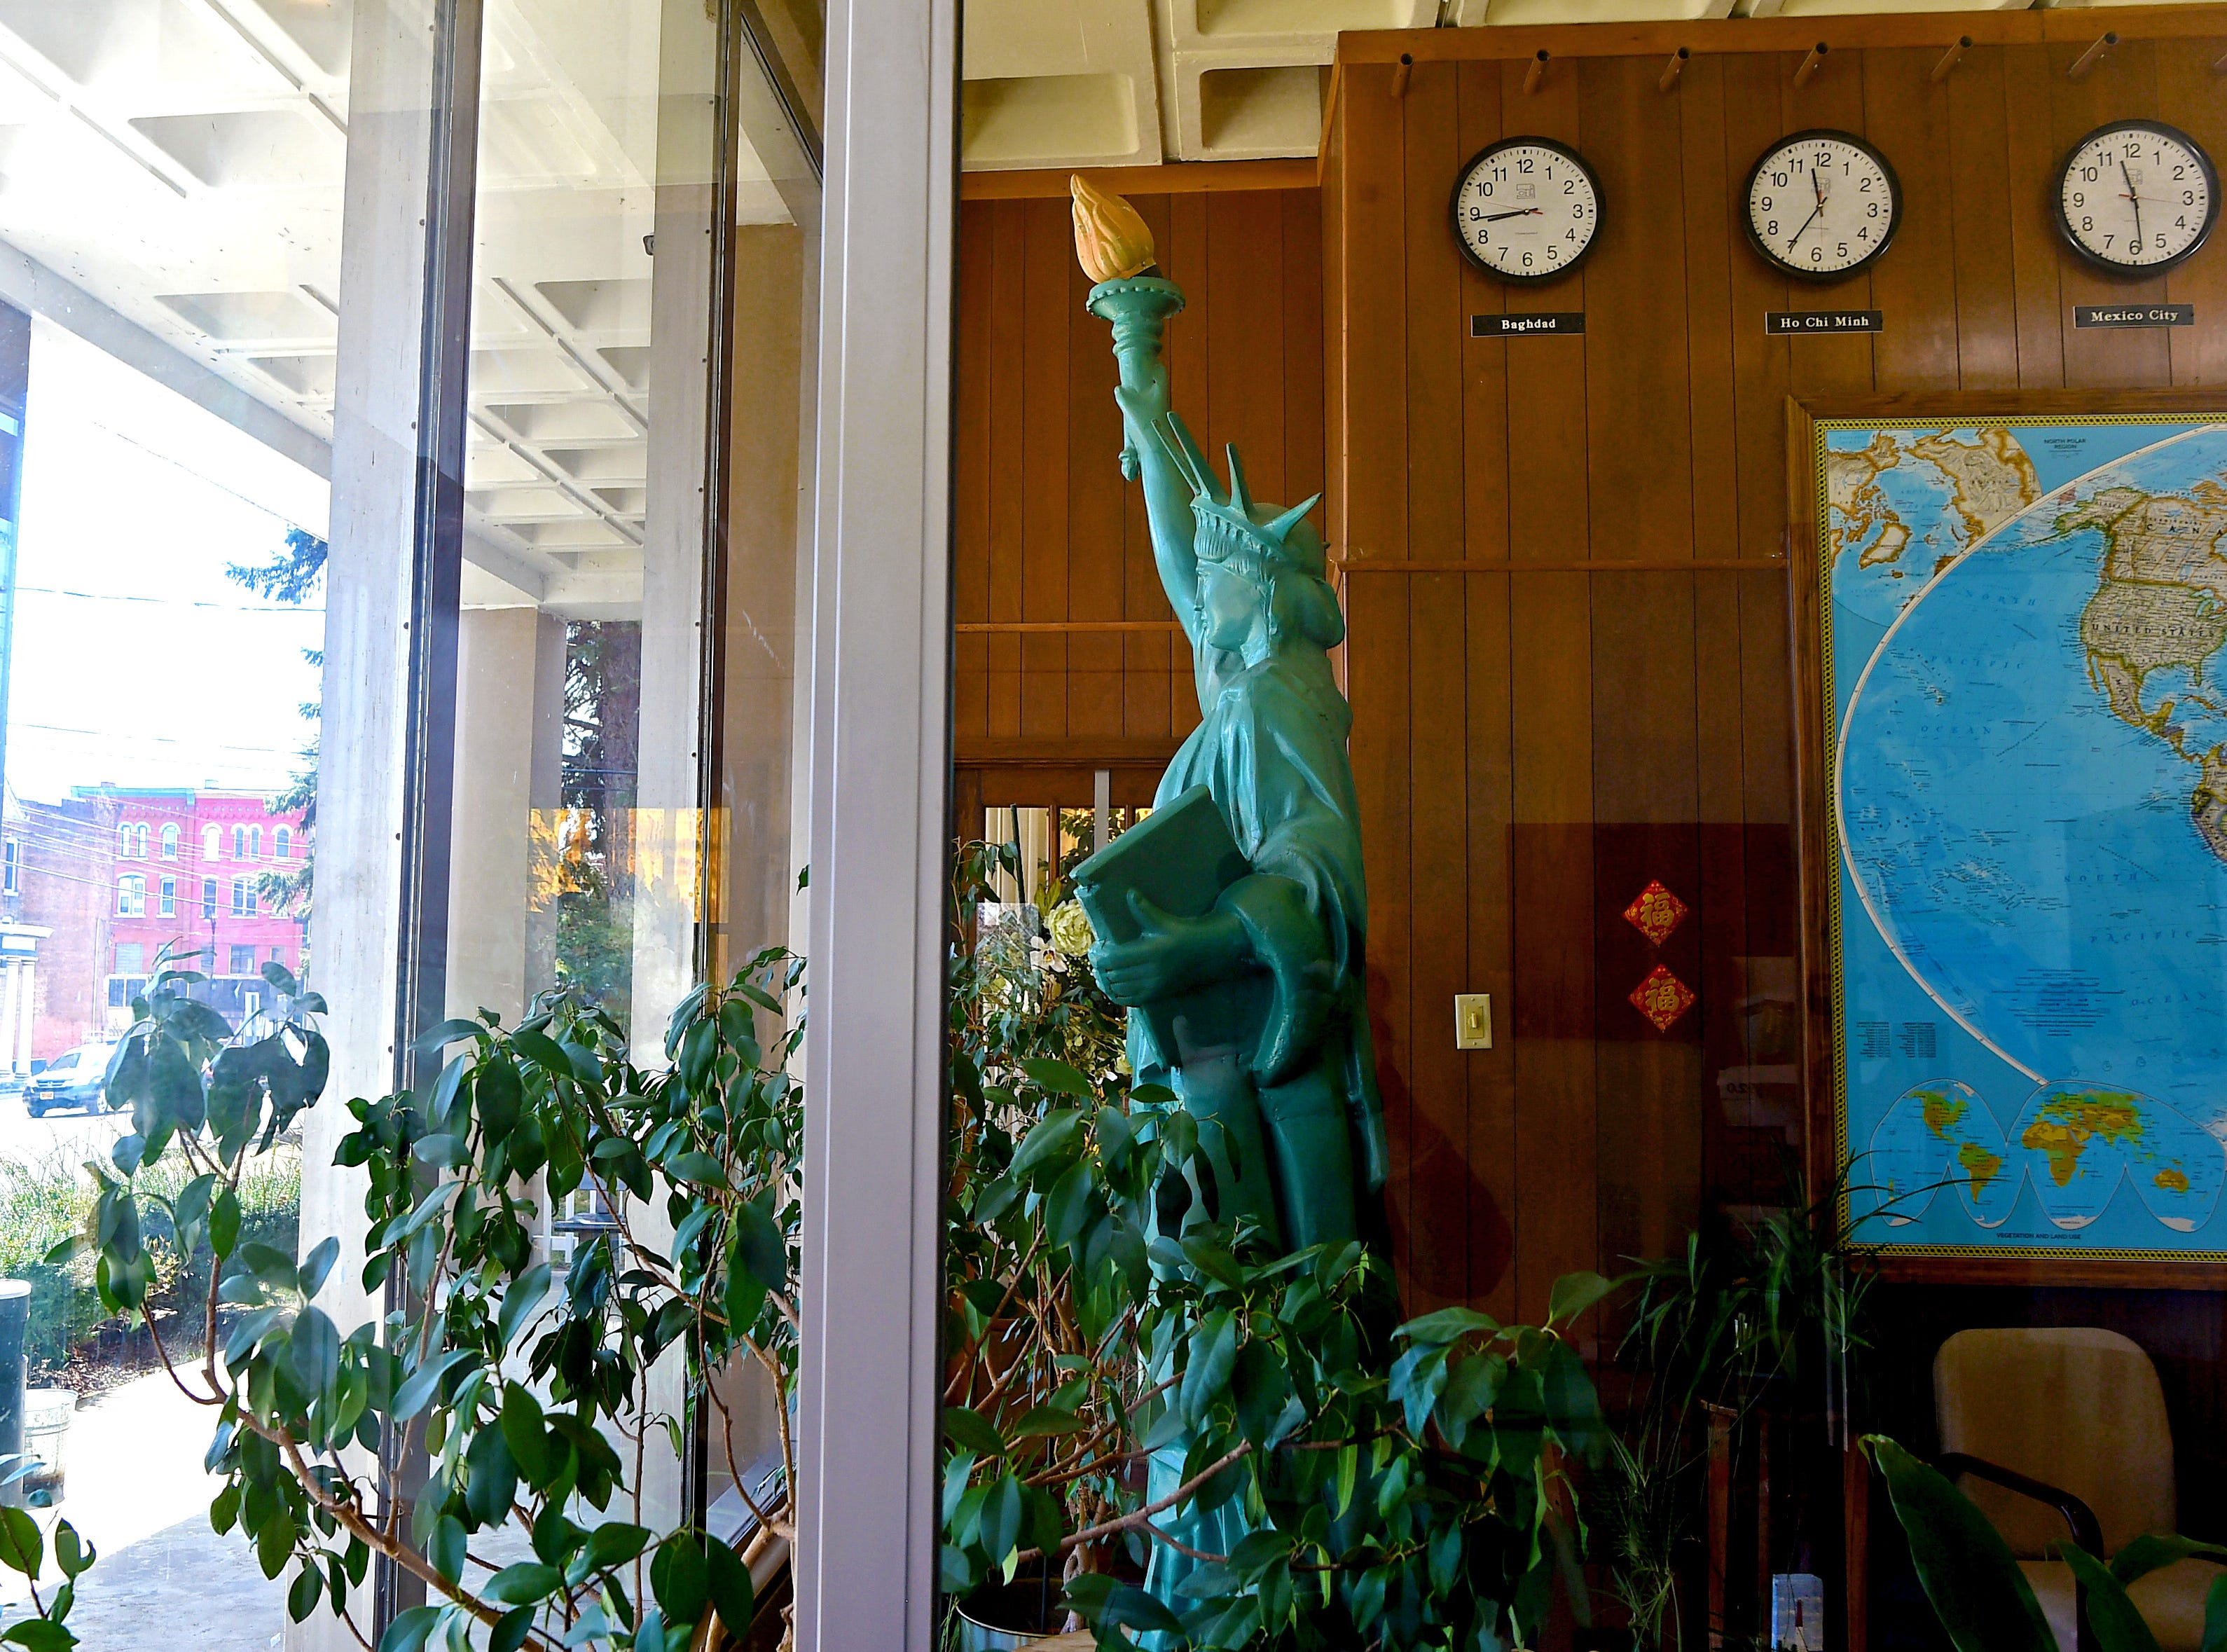 A Statue of Liberty replica welcomes visitors to the American Civic Association in Binghamton. The organization helps immigrants and refugees assimilate into society and guides them in becoming U.S. citizens.